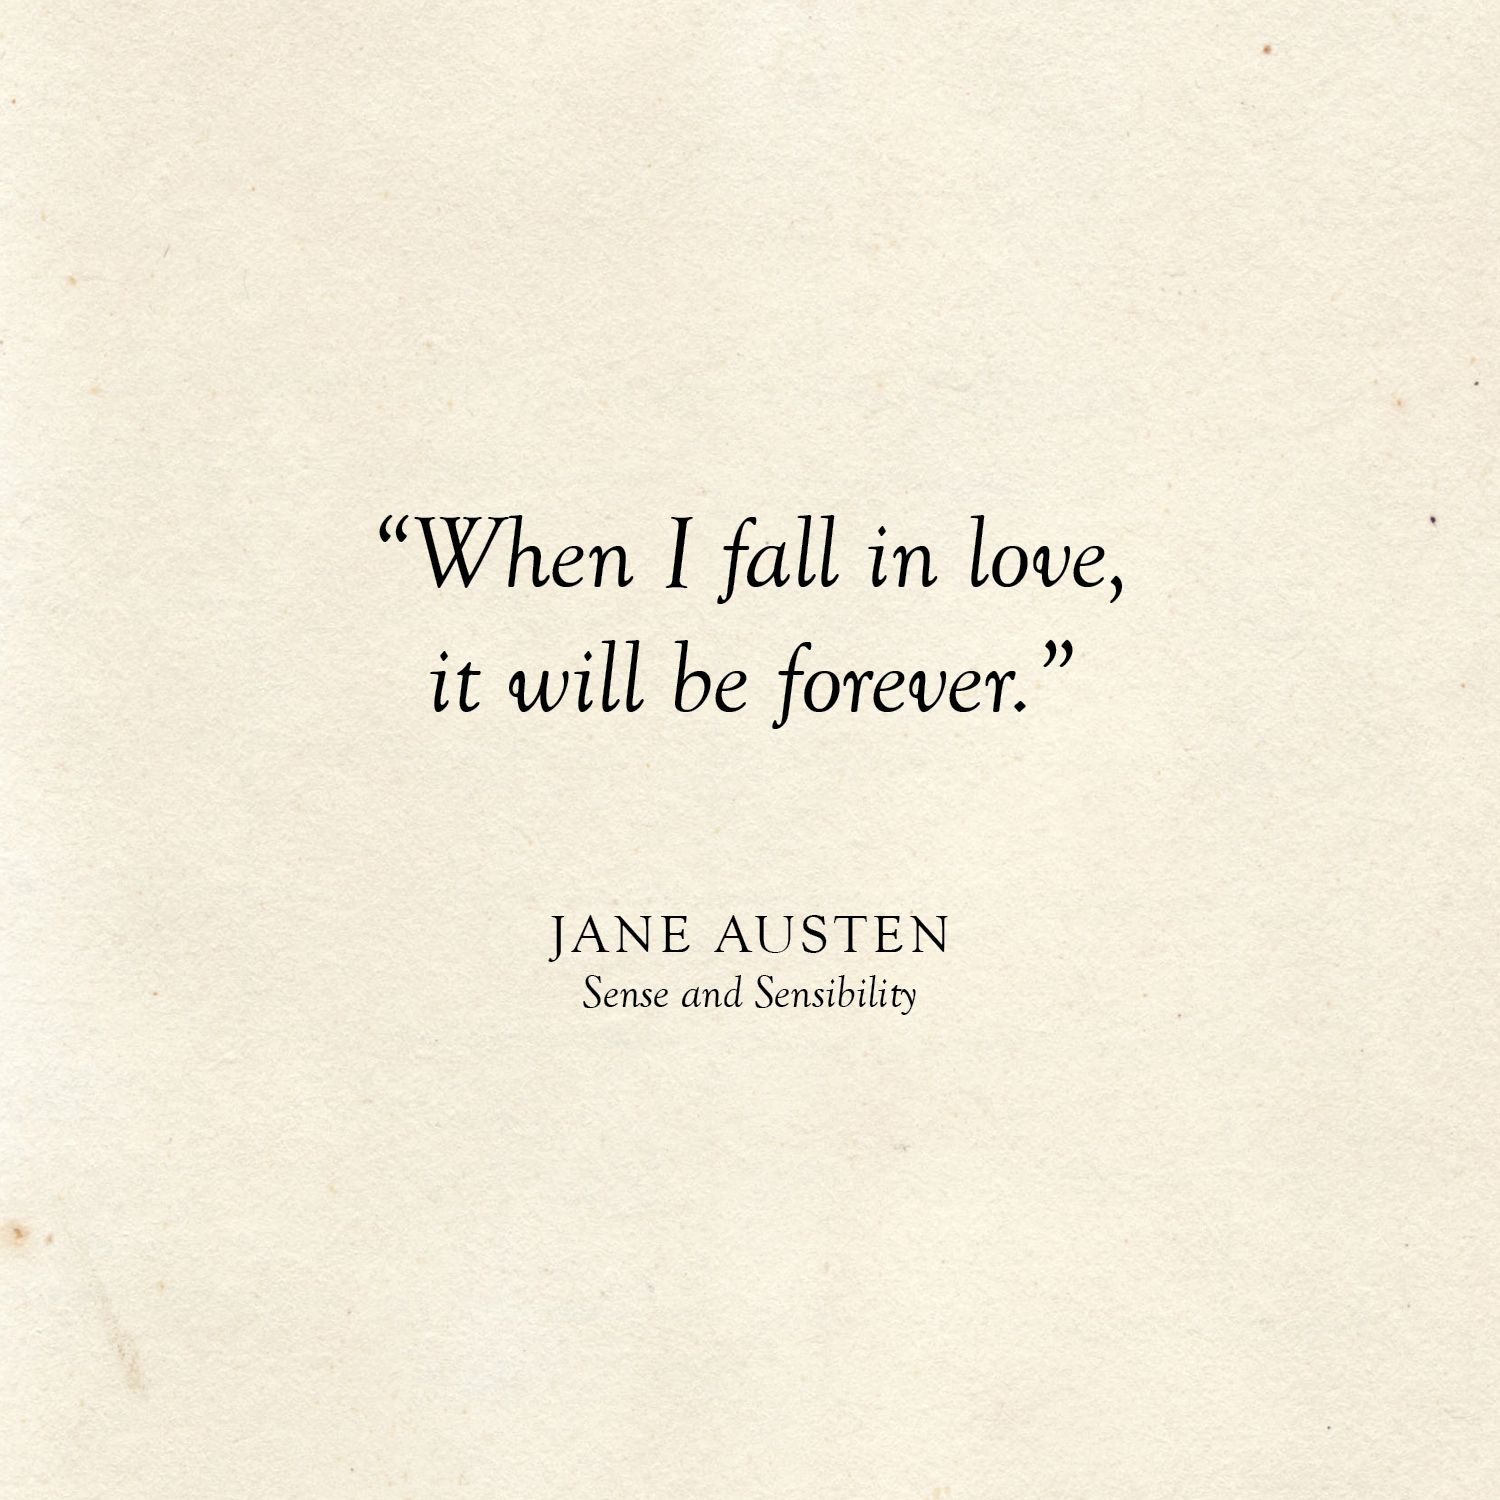 When I fall in love it will be forever Jane Austen Quote Literary Wedding Love Quotes